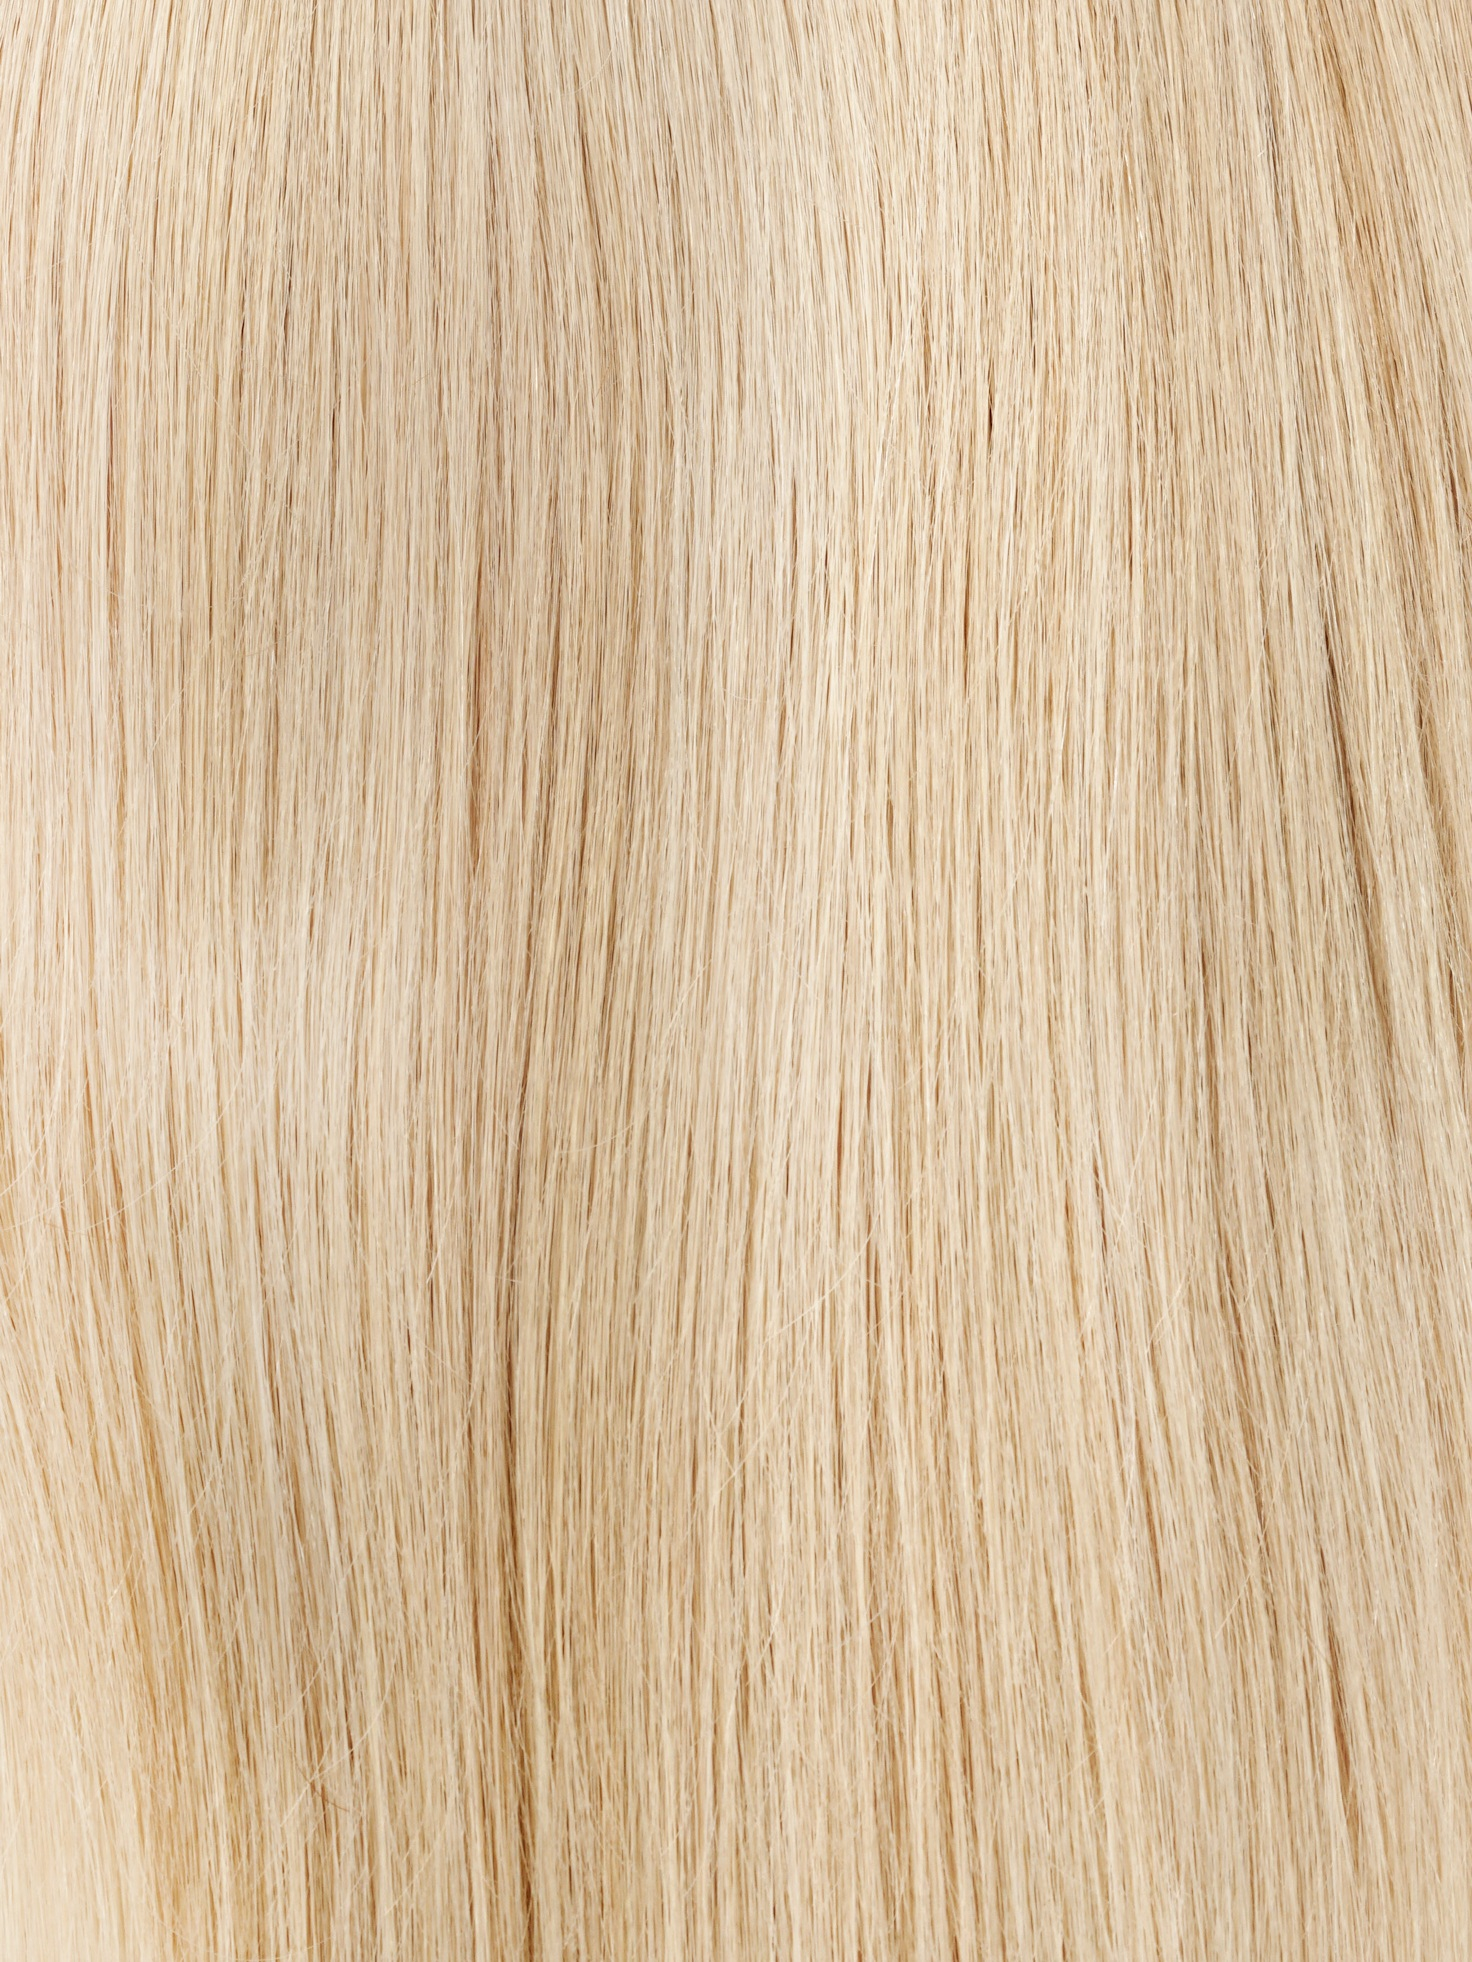 BABY ASH BLONDE #826 - Our Baby Blonde color contains a combination of an ashy blonde, a warm blonde, and a platinum blonde. The ashy blonde tends to be strong as it contrasts with the platinum, but when in the light the gold pops out beautifully.